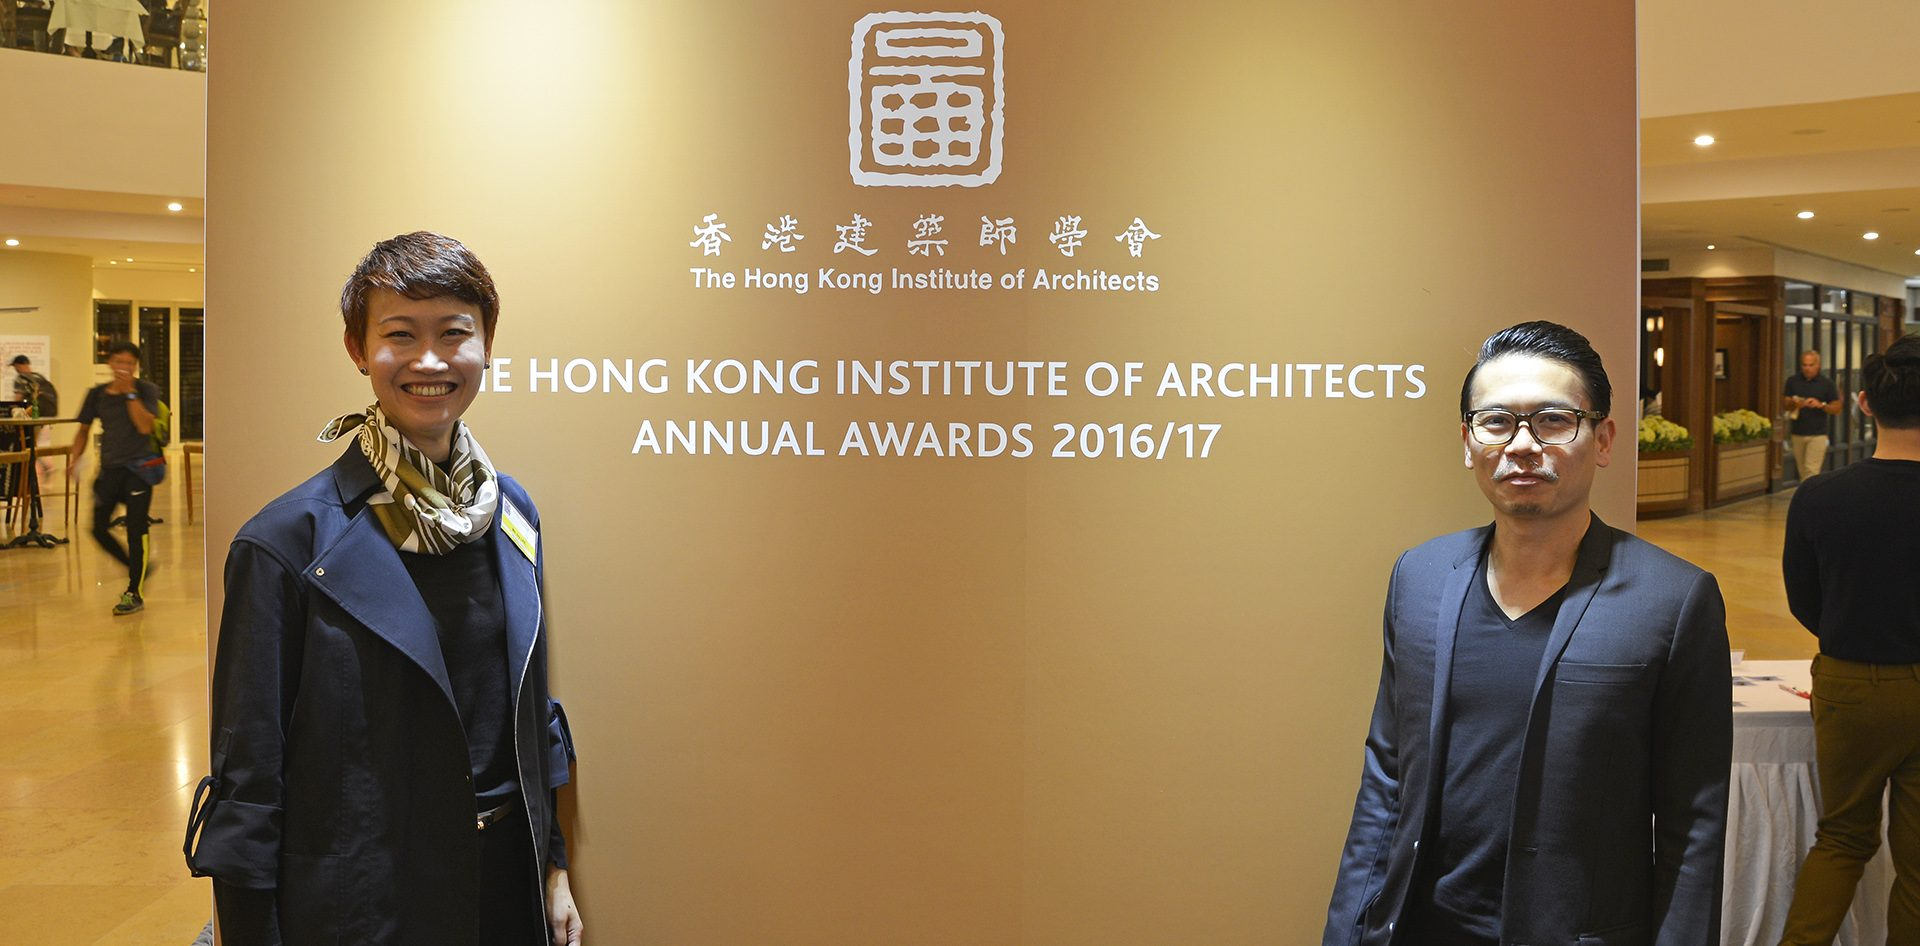 L&O wins HKIA Annual Awards